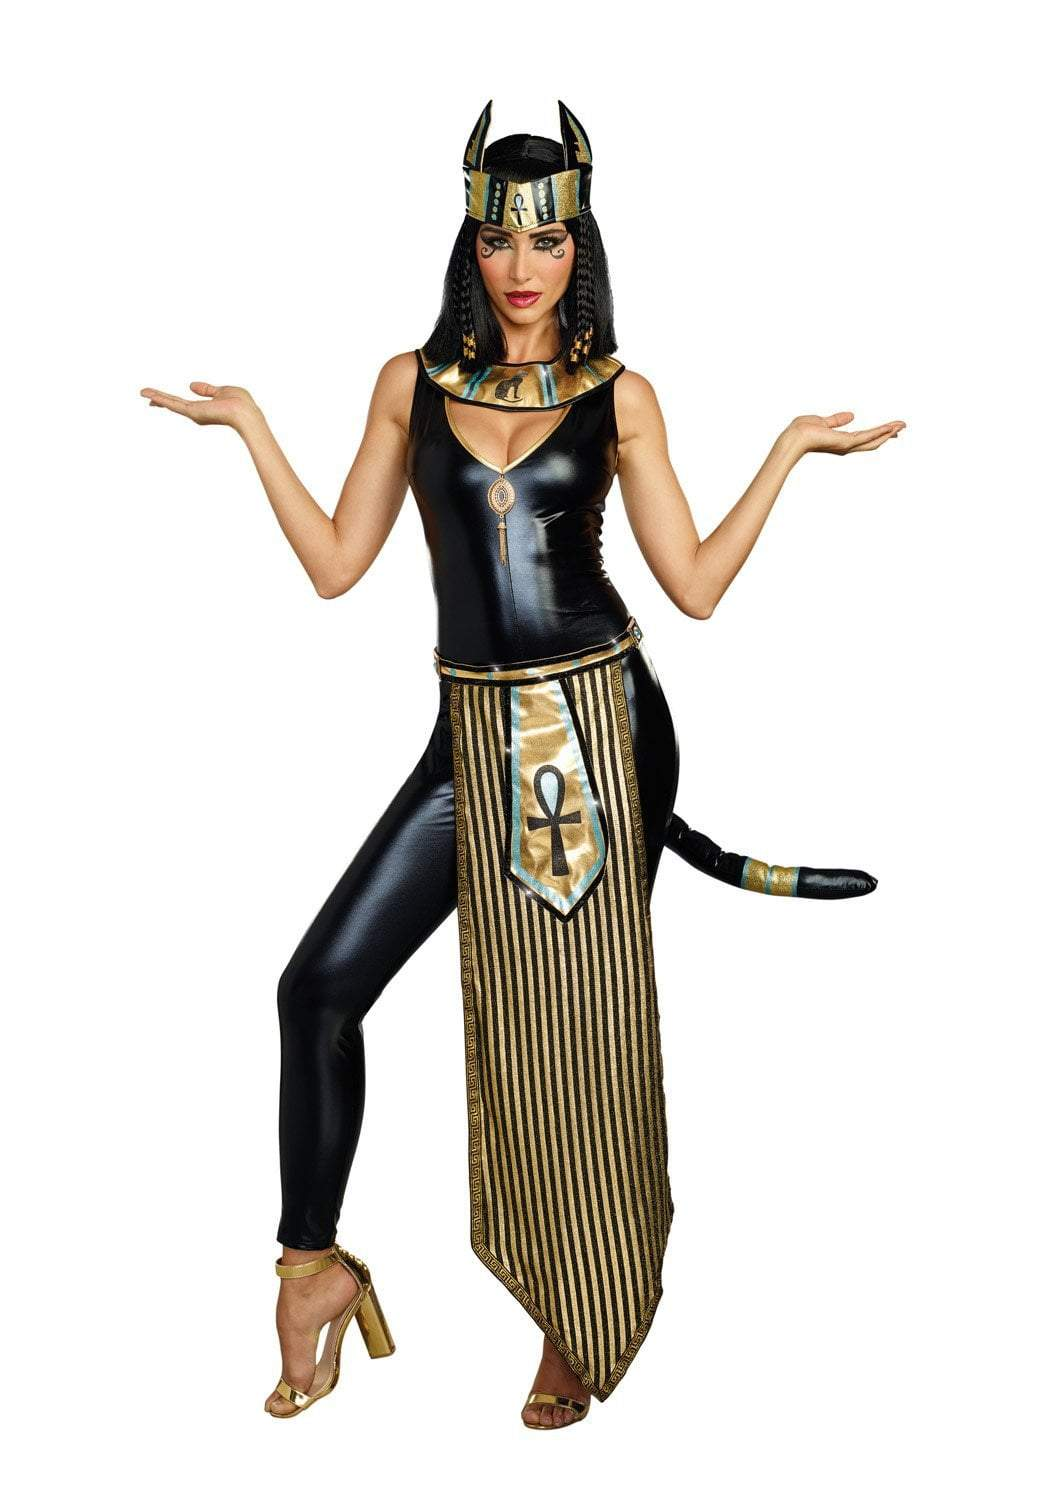 Dreamgirl Costumes LARGE Dreamgirl Women's Egyptian Kitty Of De Nile Sexy Costume Jumpsuit